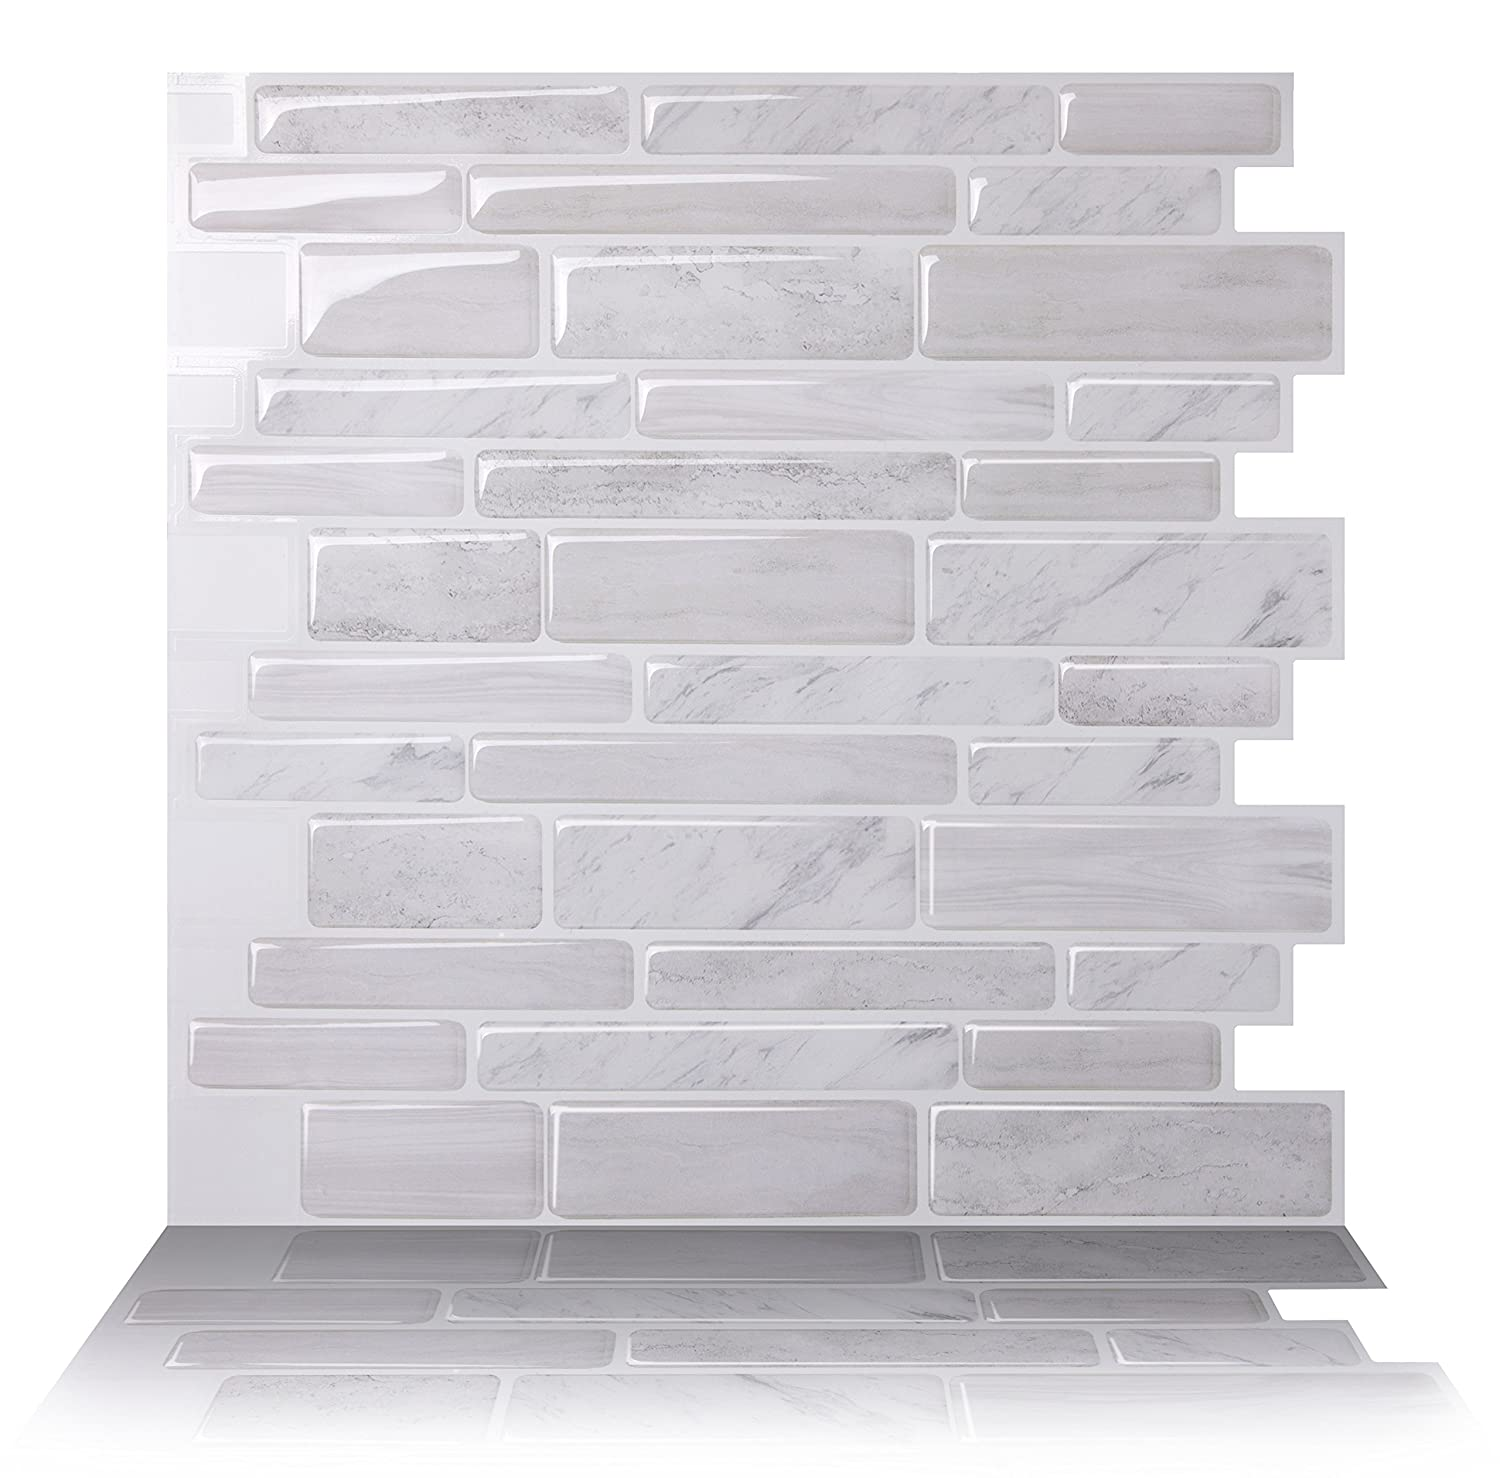 Tic Tac Tiles Anti-Mold Peel and Stick Wall Tile in Polito White (1 Tile) AHN-BRS11